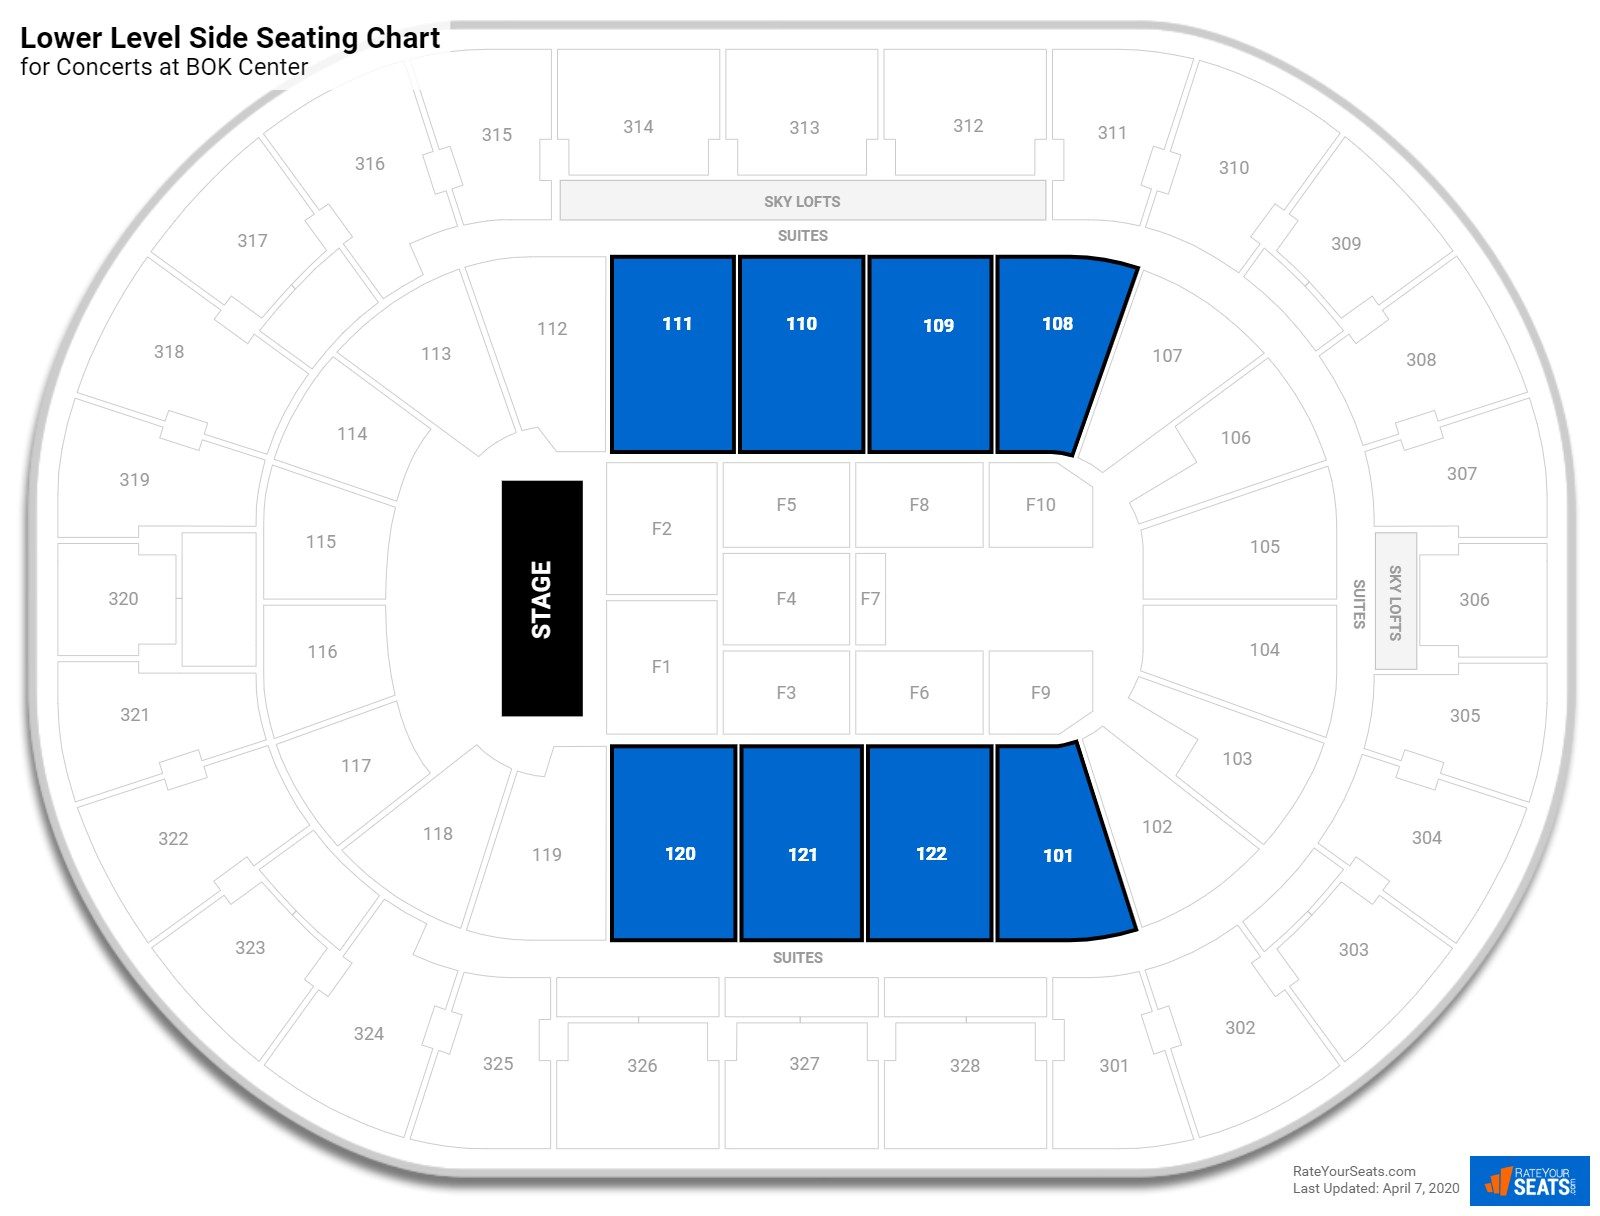 Bok Center Seating For Concerts  Rateyourseats in Bok Center Seating Chart Detailed